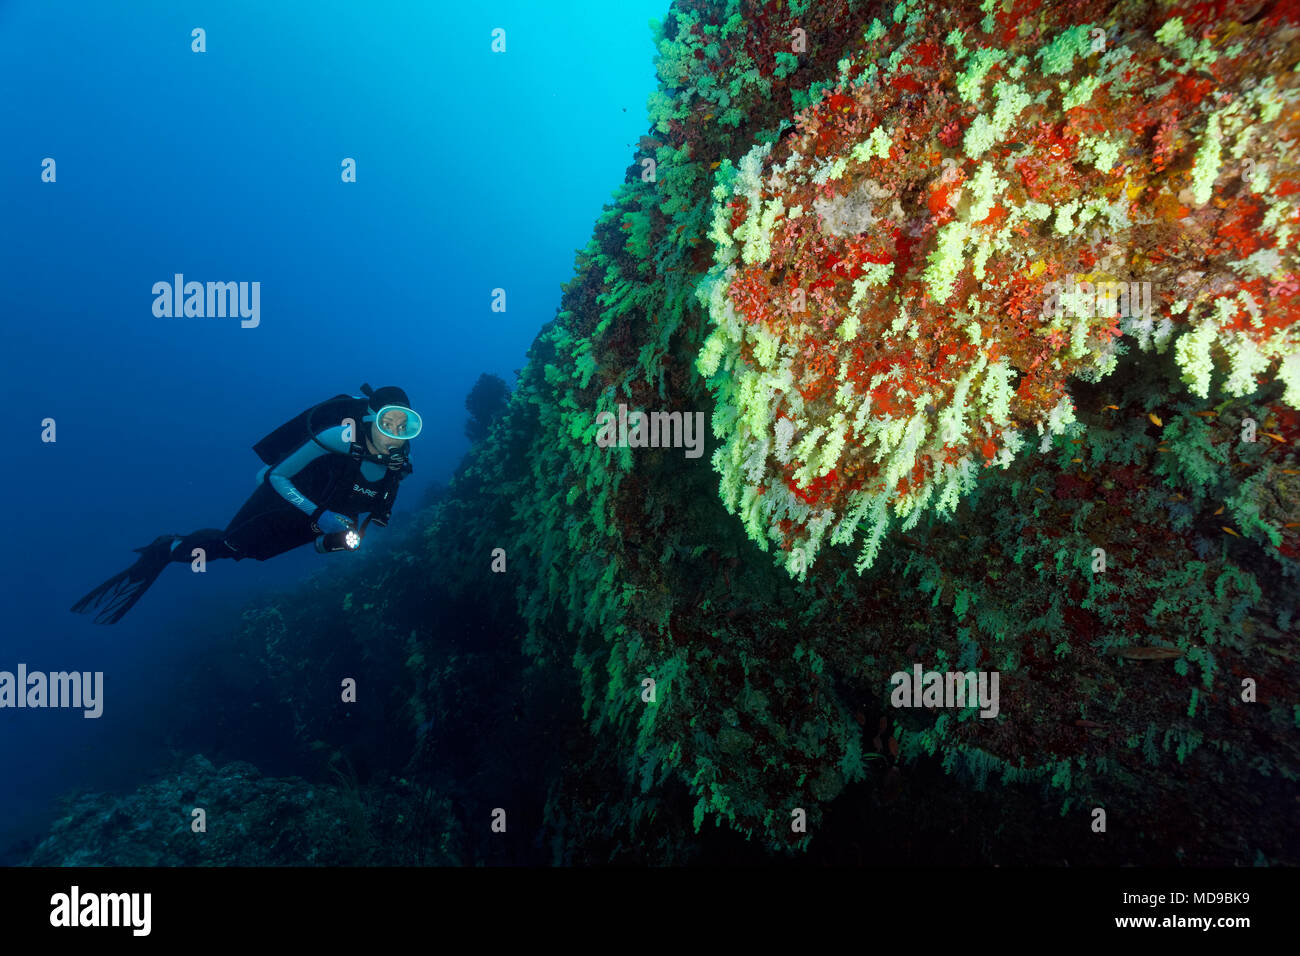 Diver looks at wall of coral reef with soft corals (Alcyonacea) yellow, hanging, Indian Ocean, Maldives Stock Photo